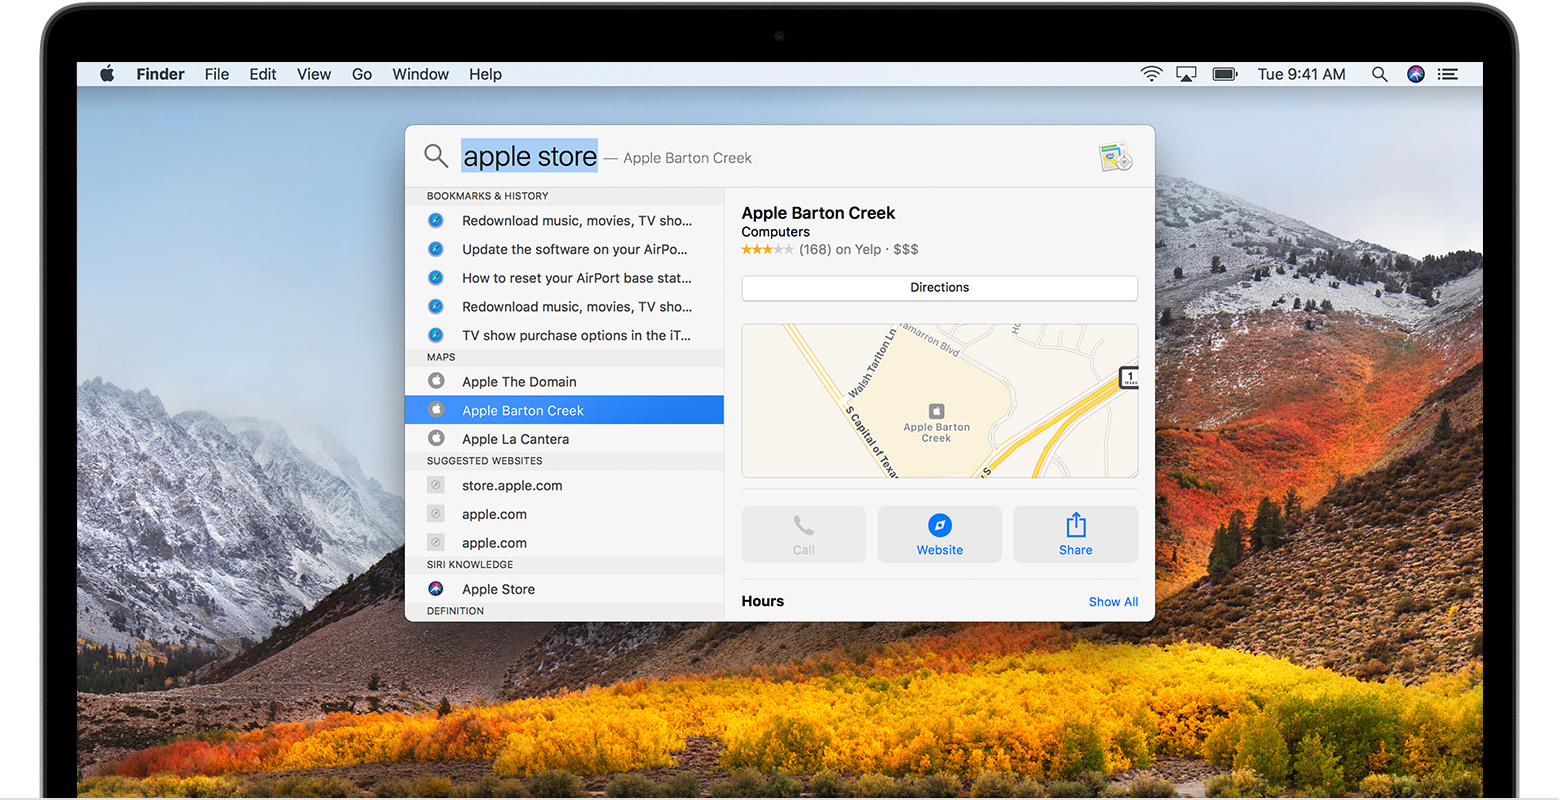 Maps search in Spotlight